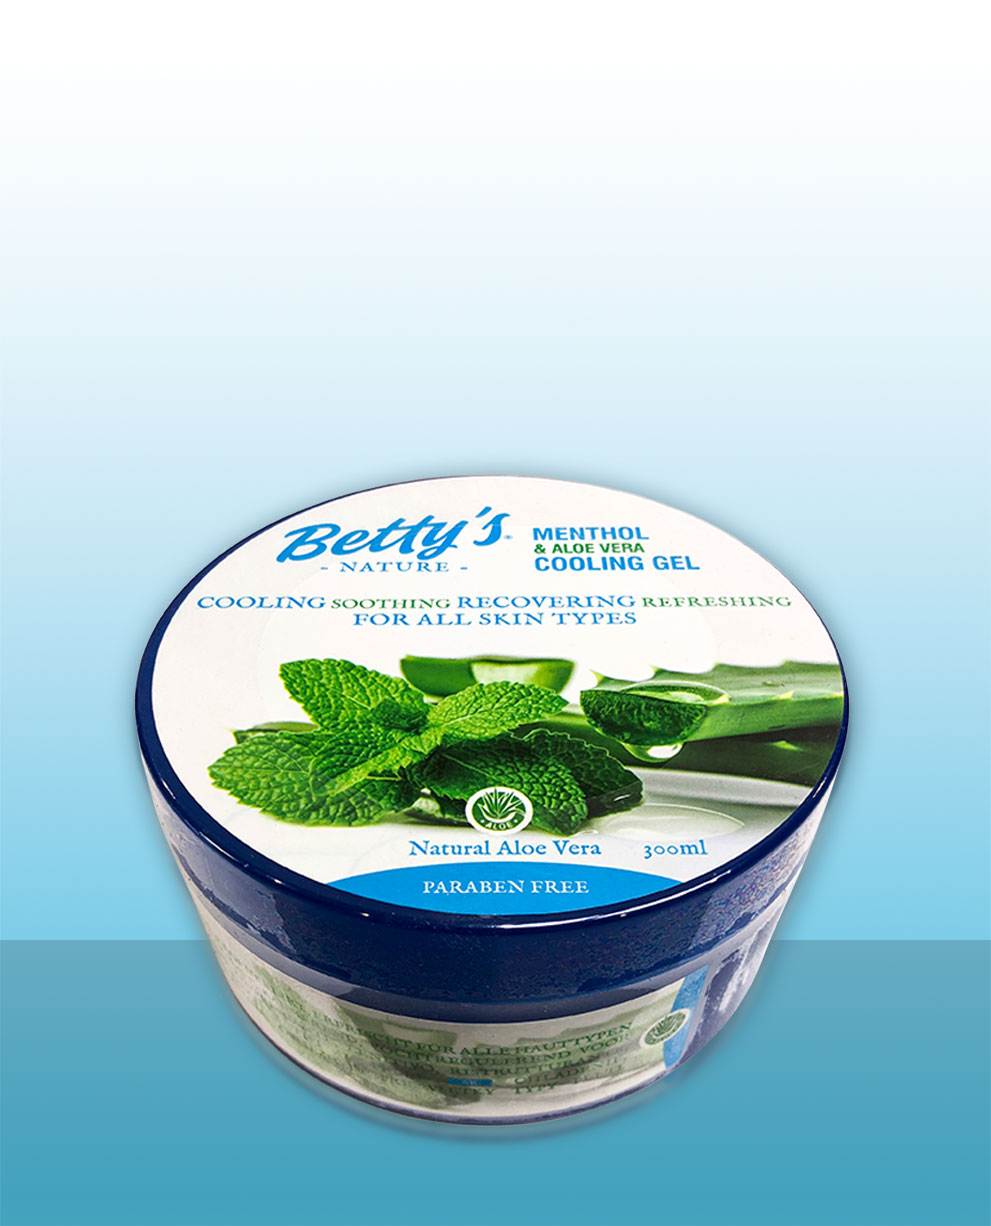 Menthol-aloevera-cooling-gel-01-BettysNature-bakingsoda-nl